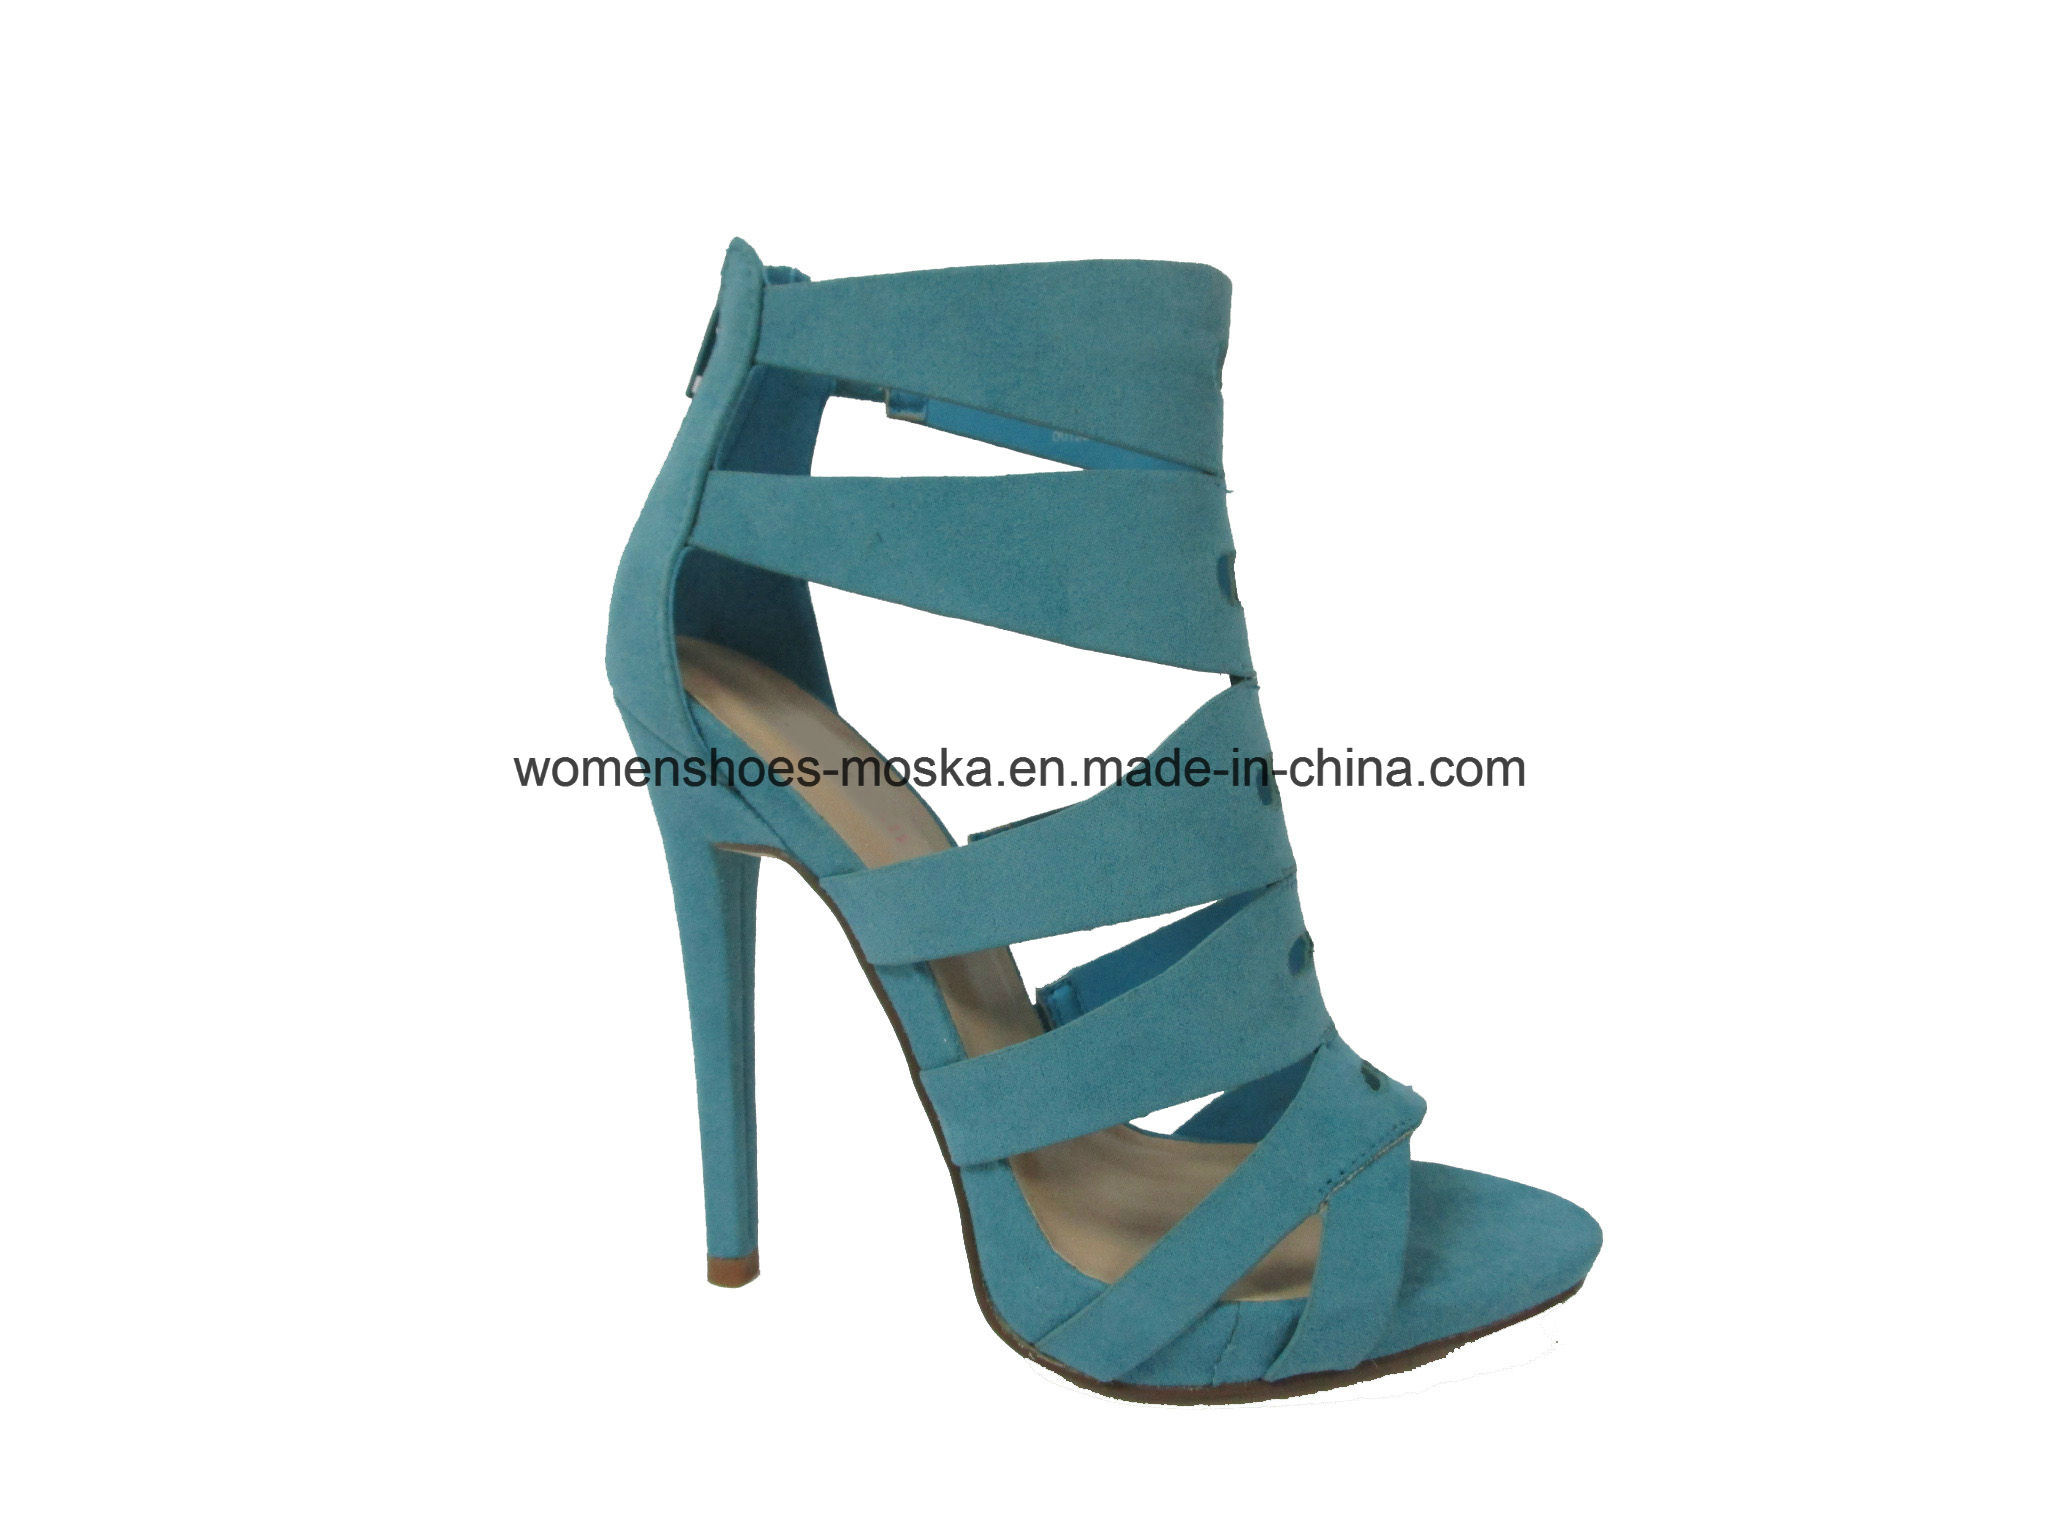 New Fashion Sexy Women High Heel Sandal Shoes